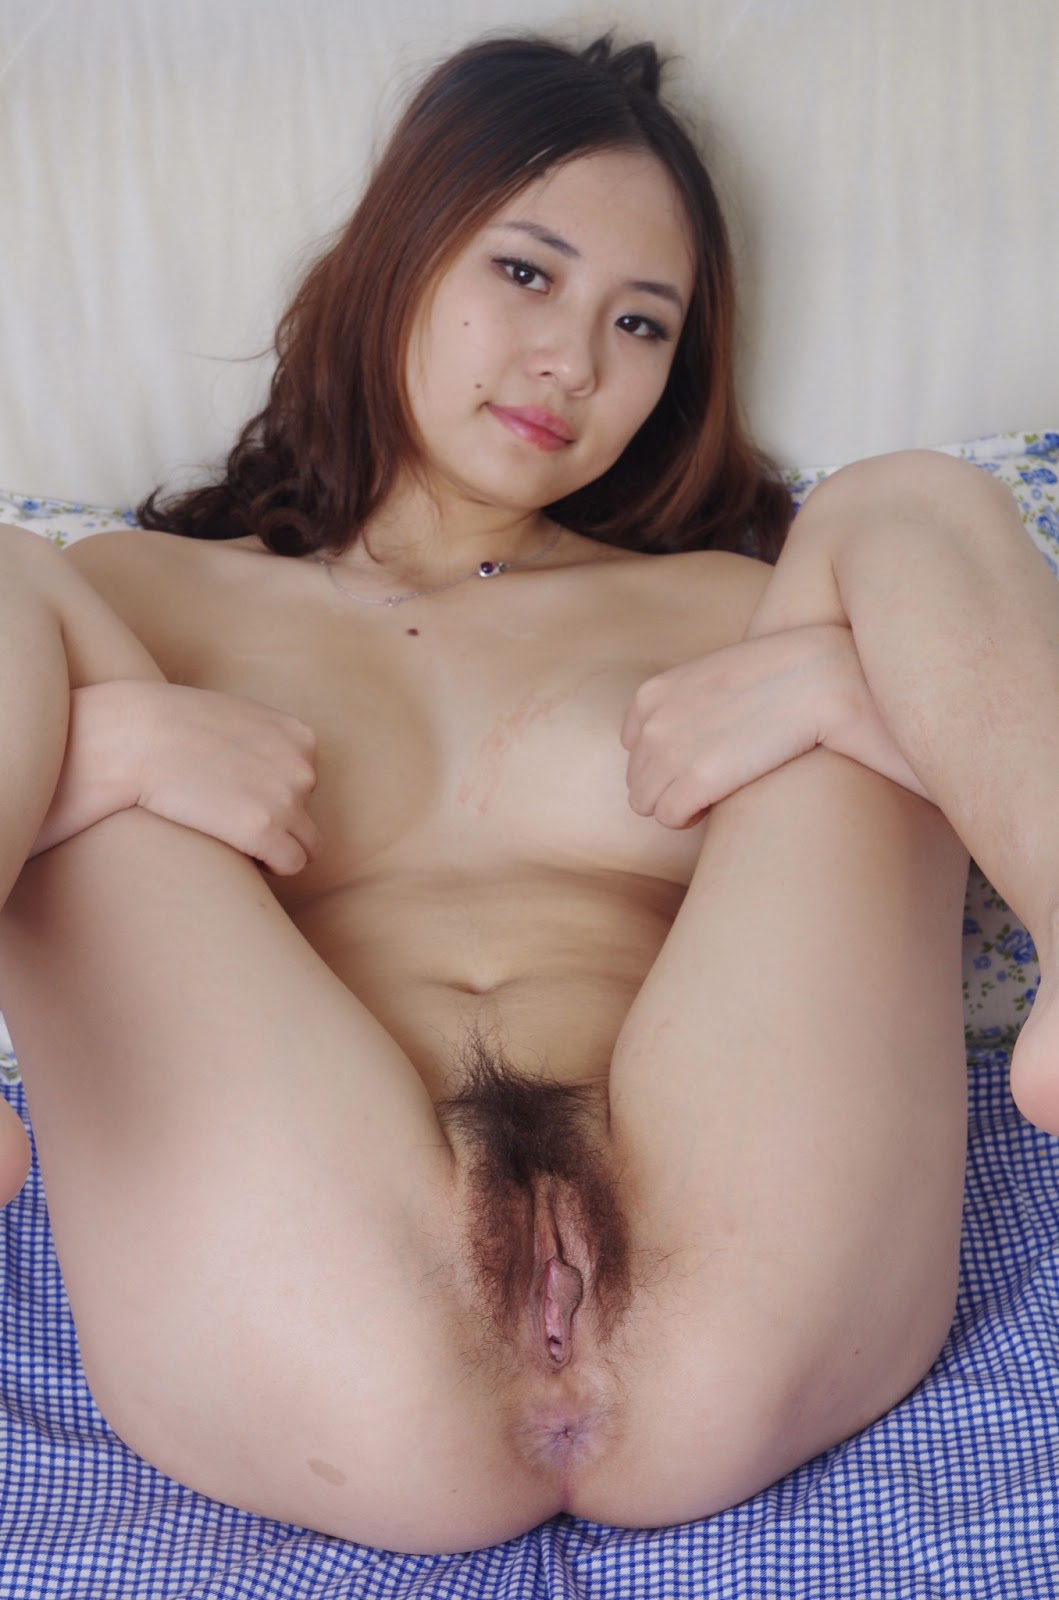 cute nude model sex women